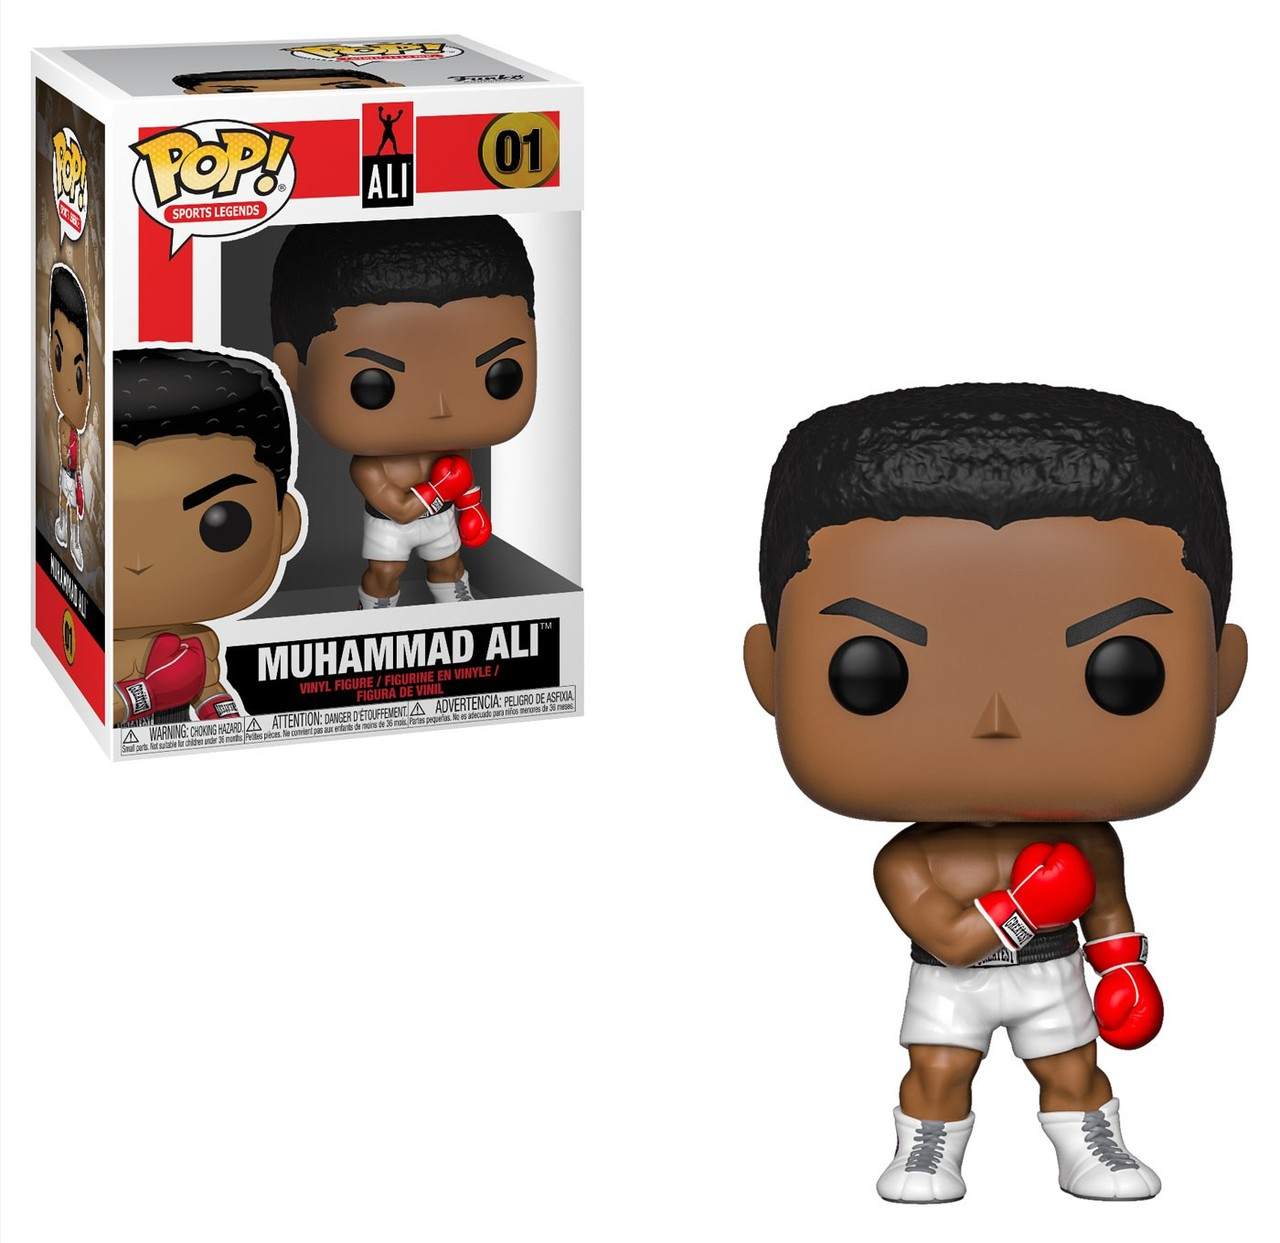 POP! Sports: Muhammad Ali Vinyl Figure #1